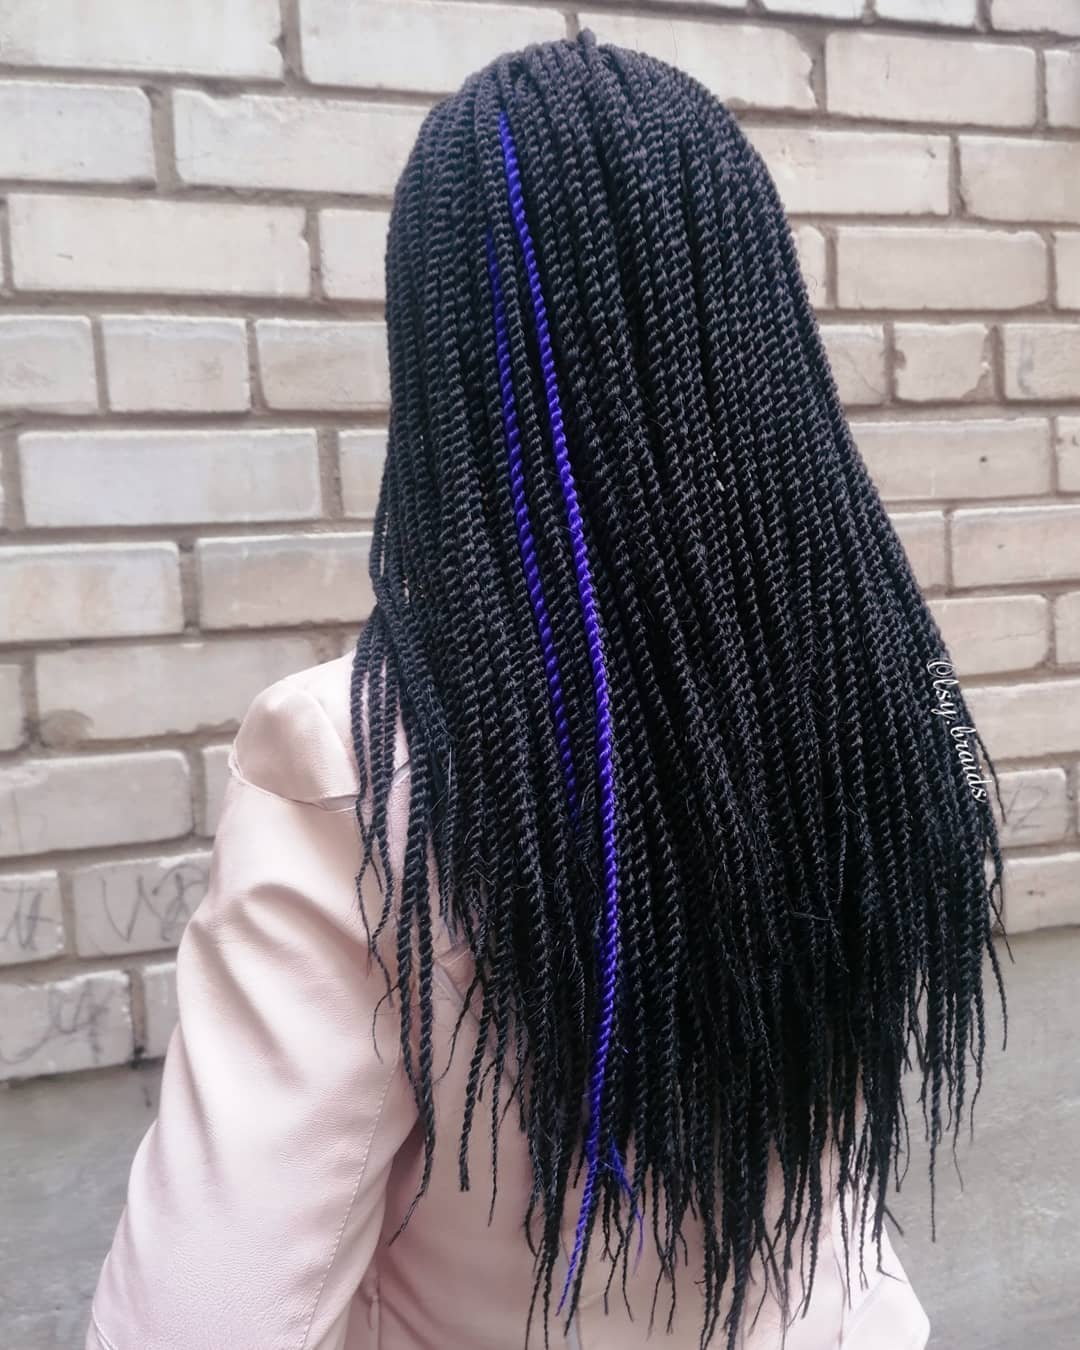 Blue strand of colored hair in senegalese twist hairstyle